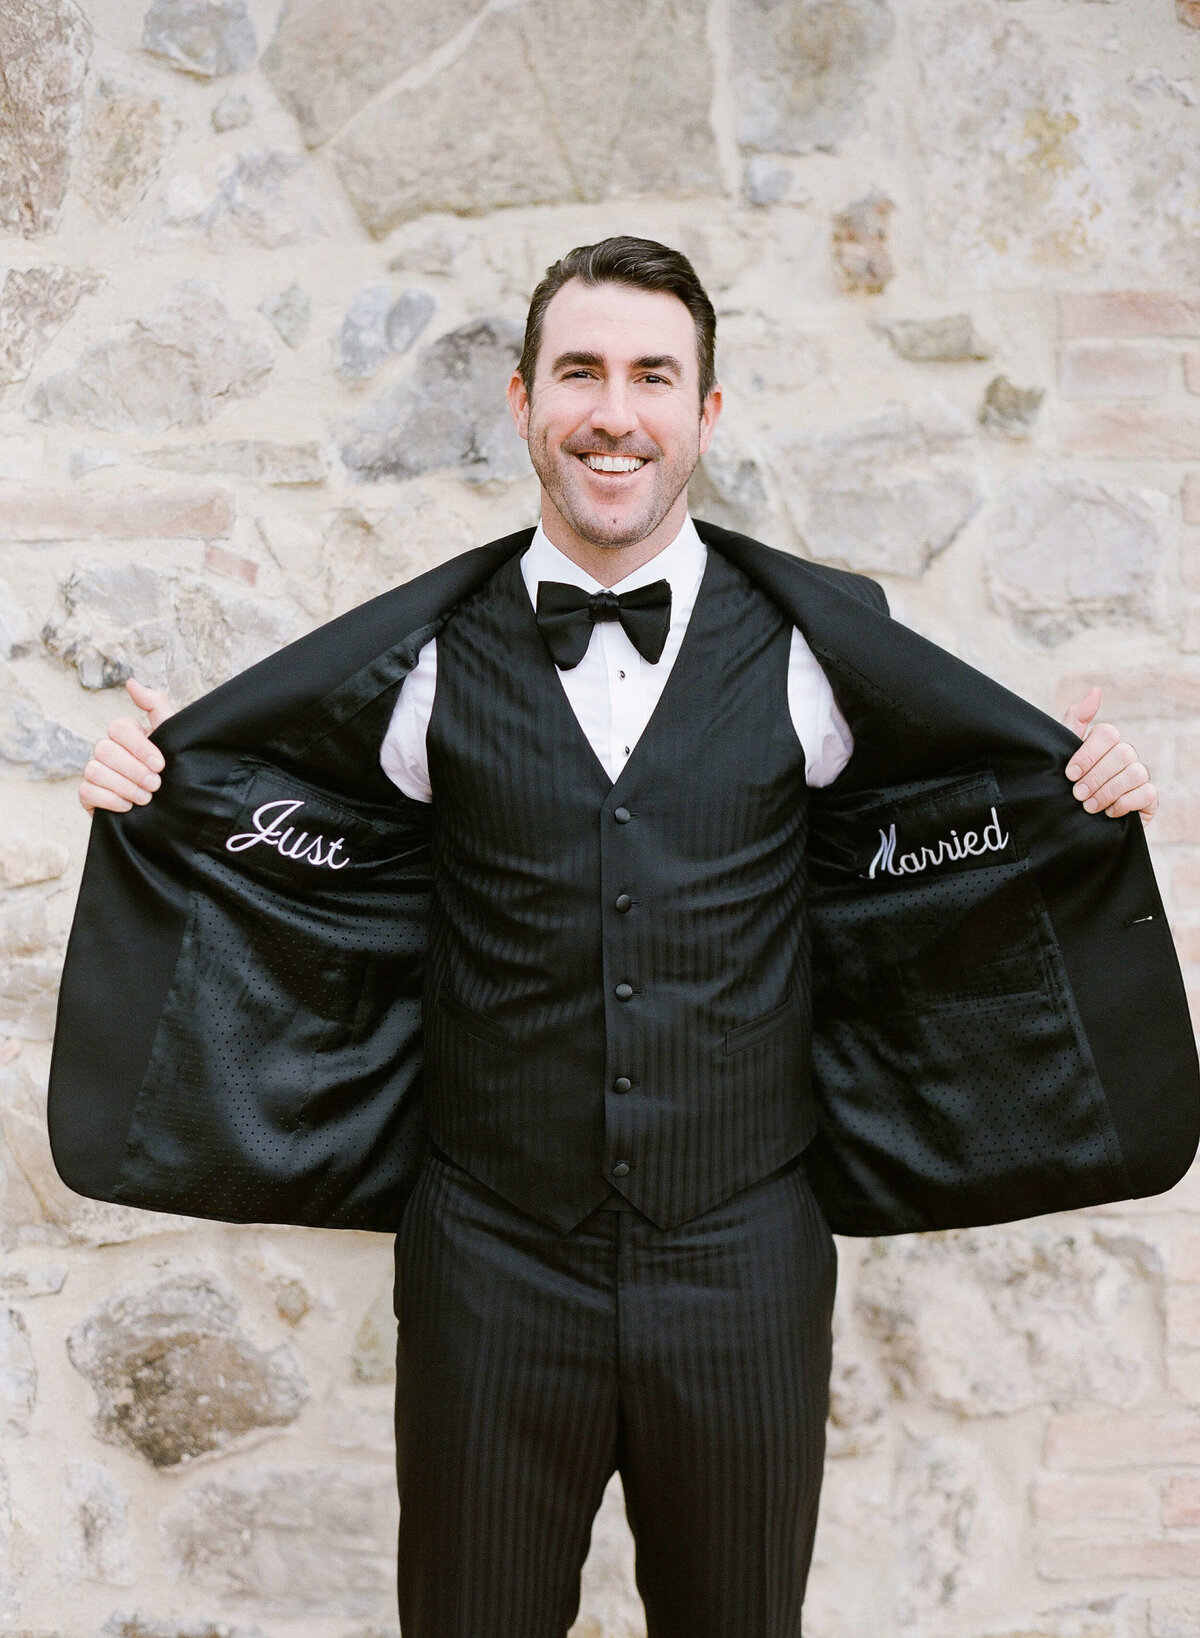 15-KTMerry-weddings-Justin-Verlander-Cicchini-Custom-tuxedo